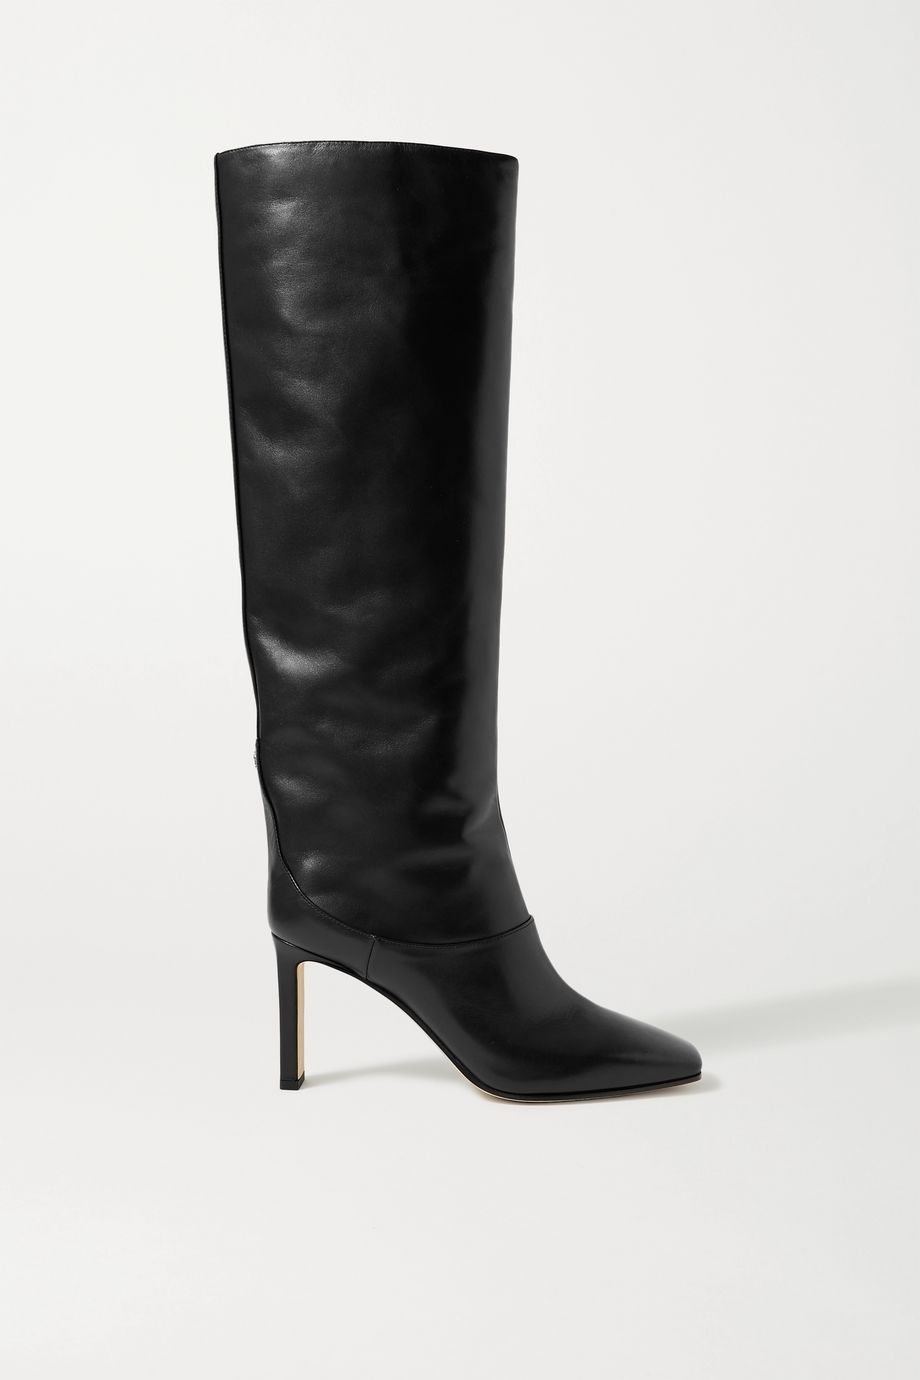 JIMMY CHOO Mahesa 85 leather knee boots